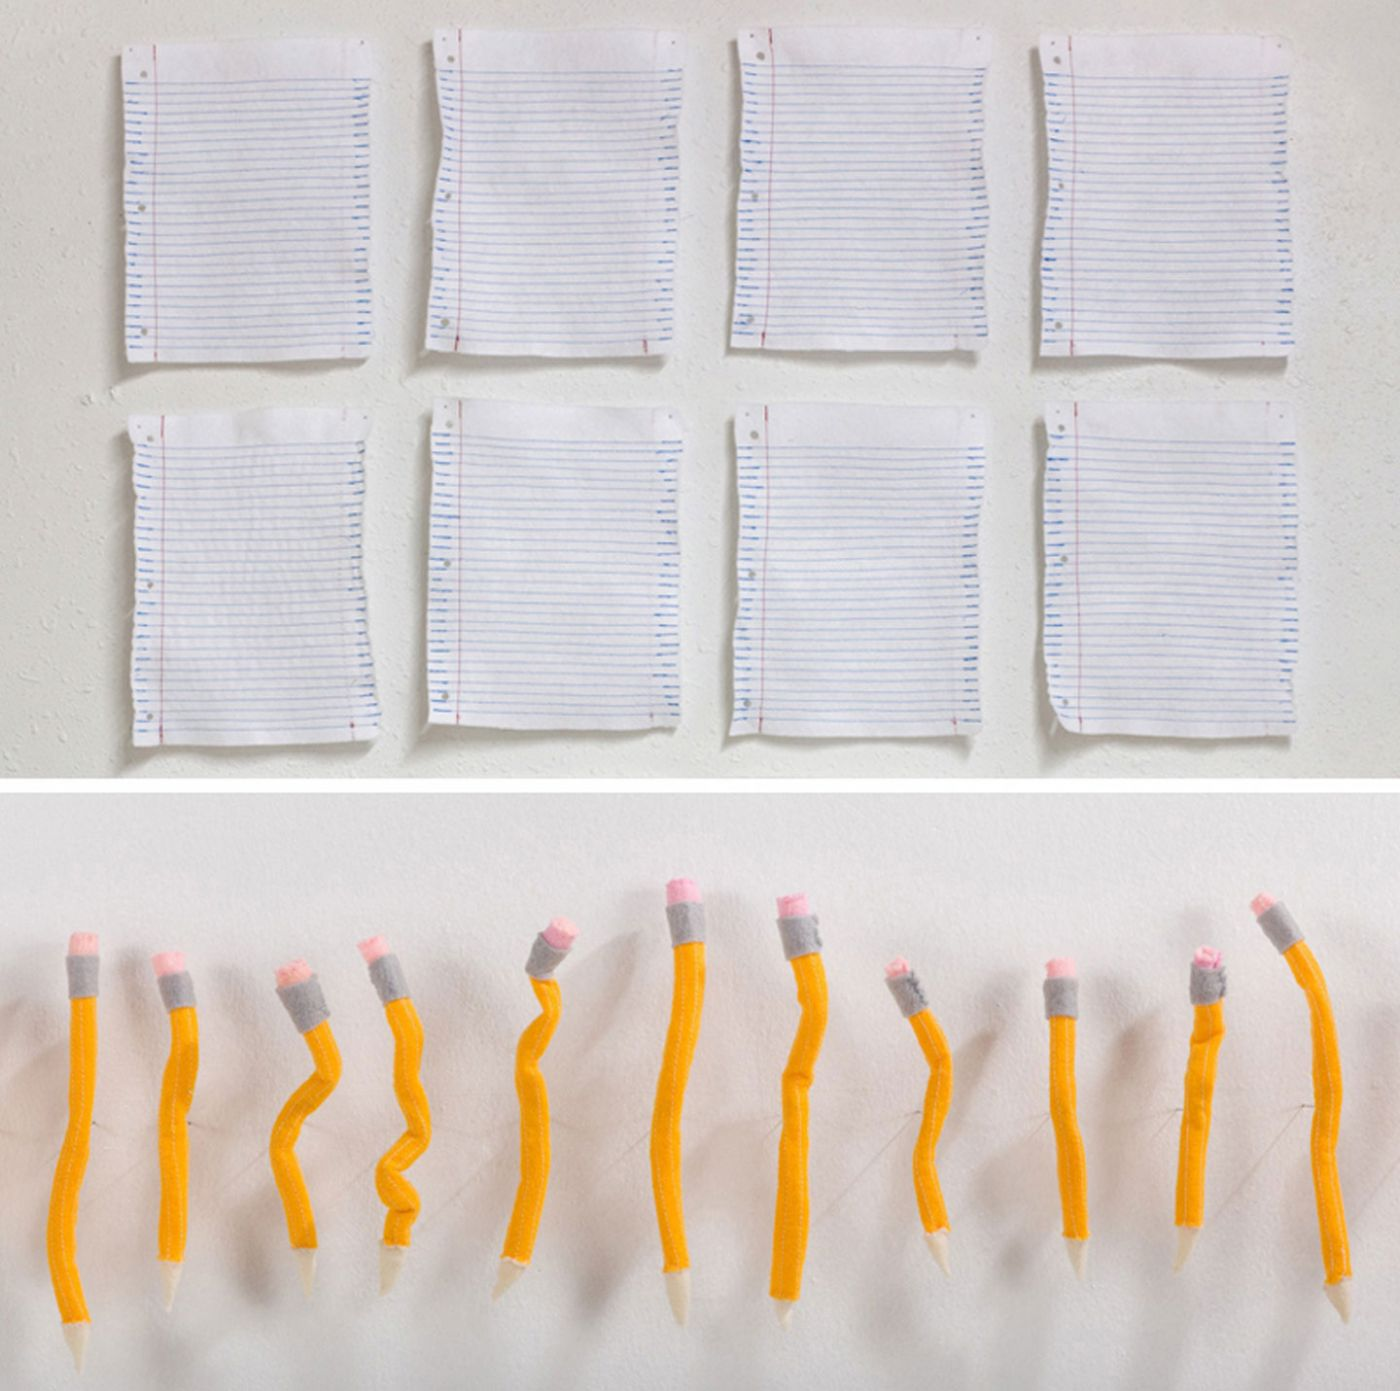 Tamara Wilson: Notebook Paper Study and Pencil Set (Felt and Thread), Limited Edition (Open)